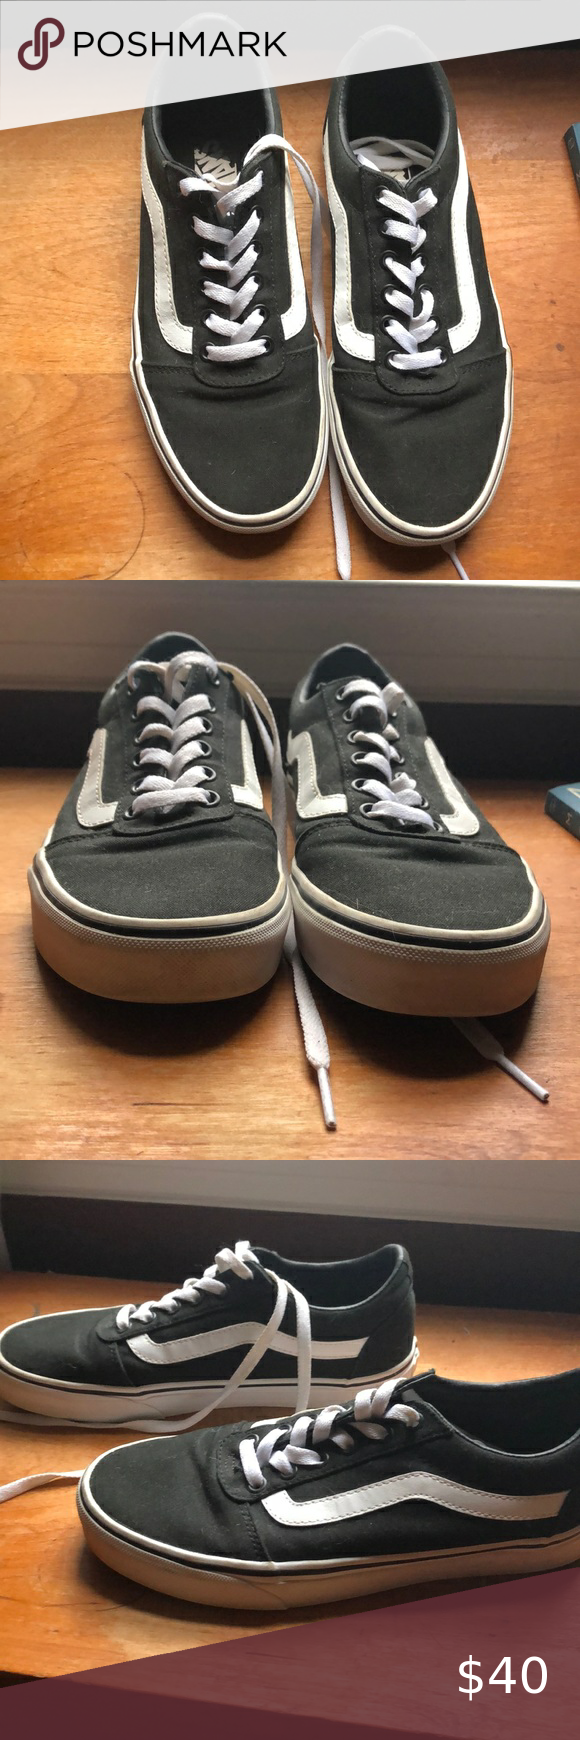 Vans size 9 Barely worn! Great condition. Some scuffs on the white ...